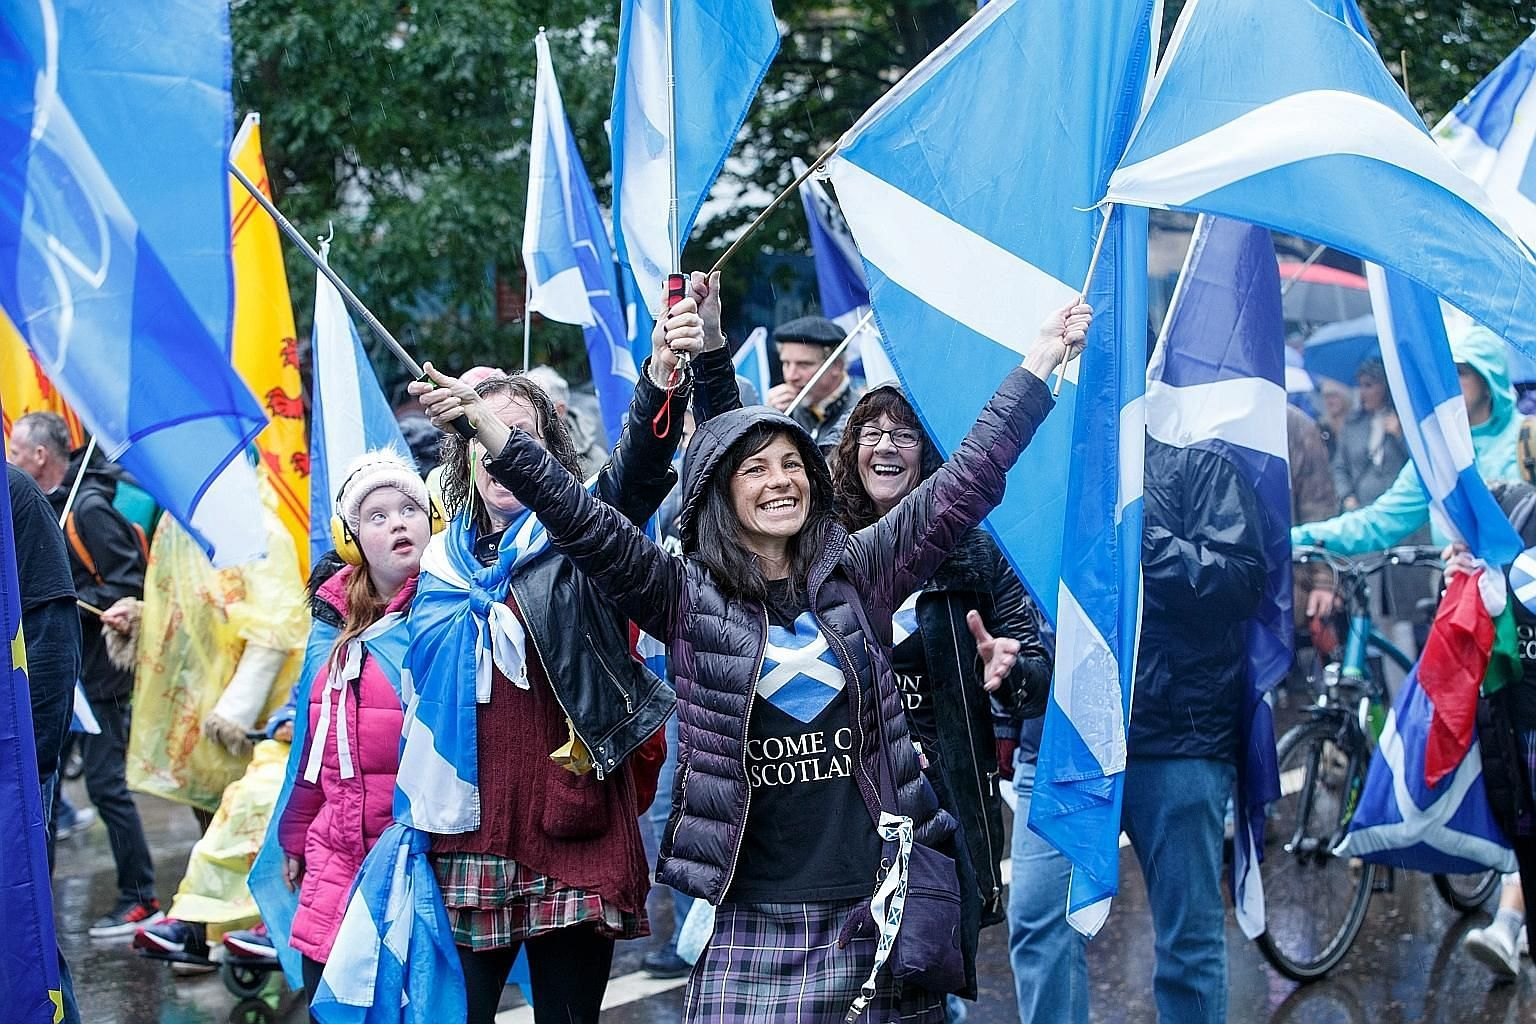 """According to All Under One Banner, which organised last Saturday's march in Edinburgh, more than 200,000 people turned up for the rally. Many carried Scottish flags, some chanted """"What do we want? Independence"""", as they made their way up the famous R"""